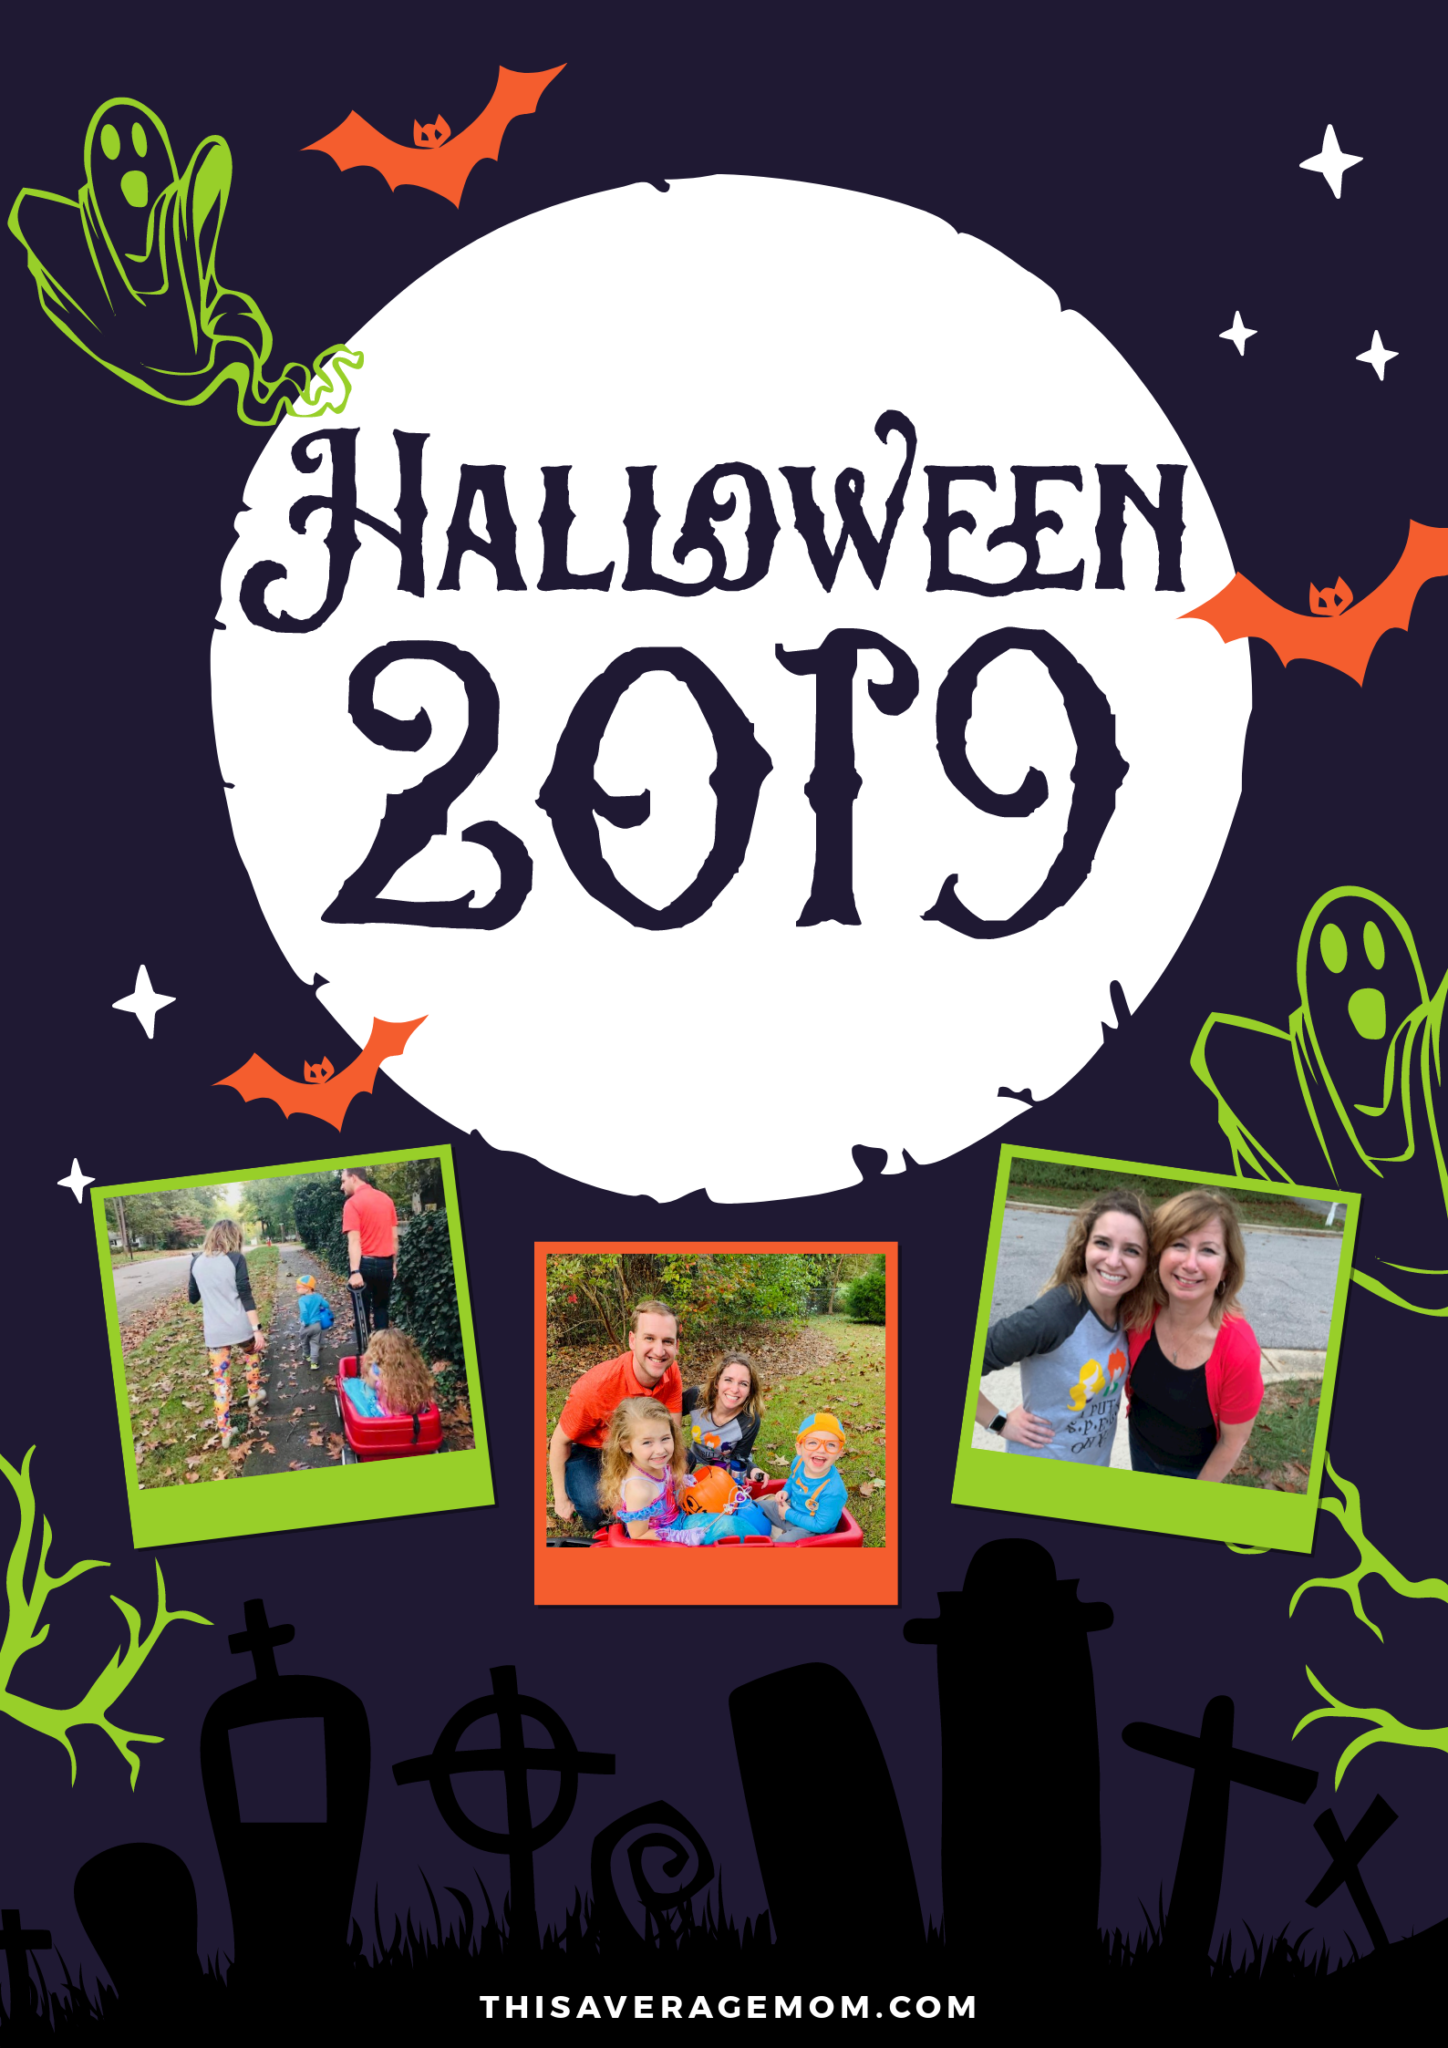 Halloween fun is on the blog! We had a mermaid princess and Blippi this year, and our kids LOVED every second of the night. #halloween #trickortreat #family